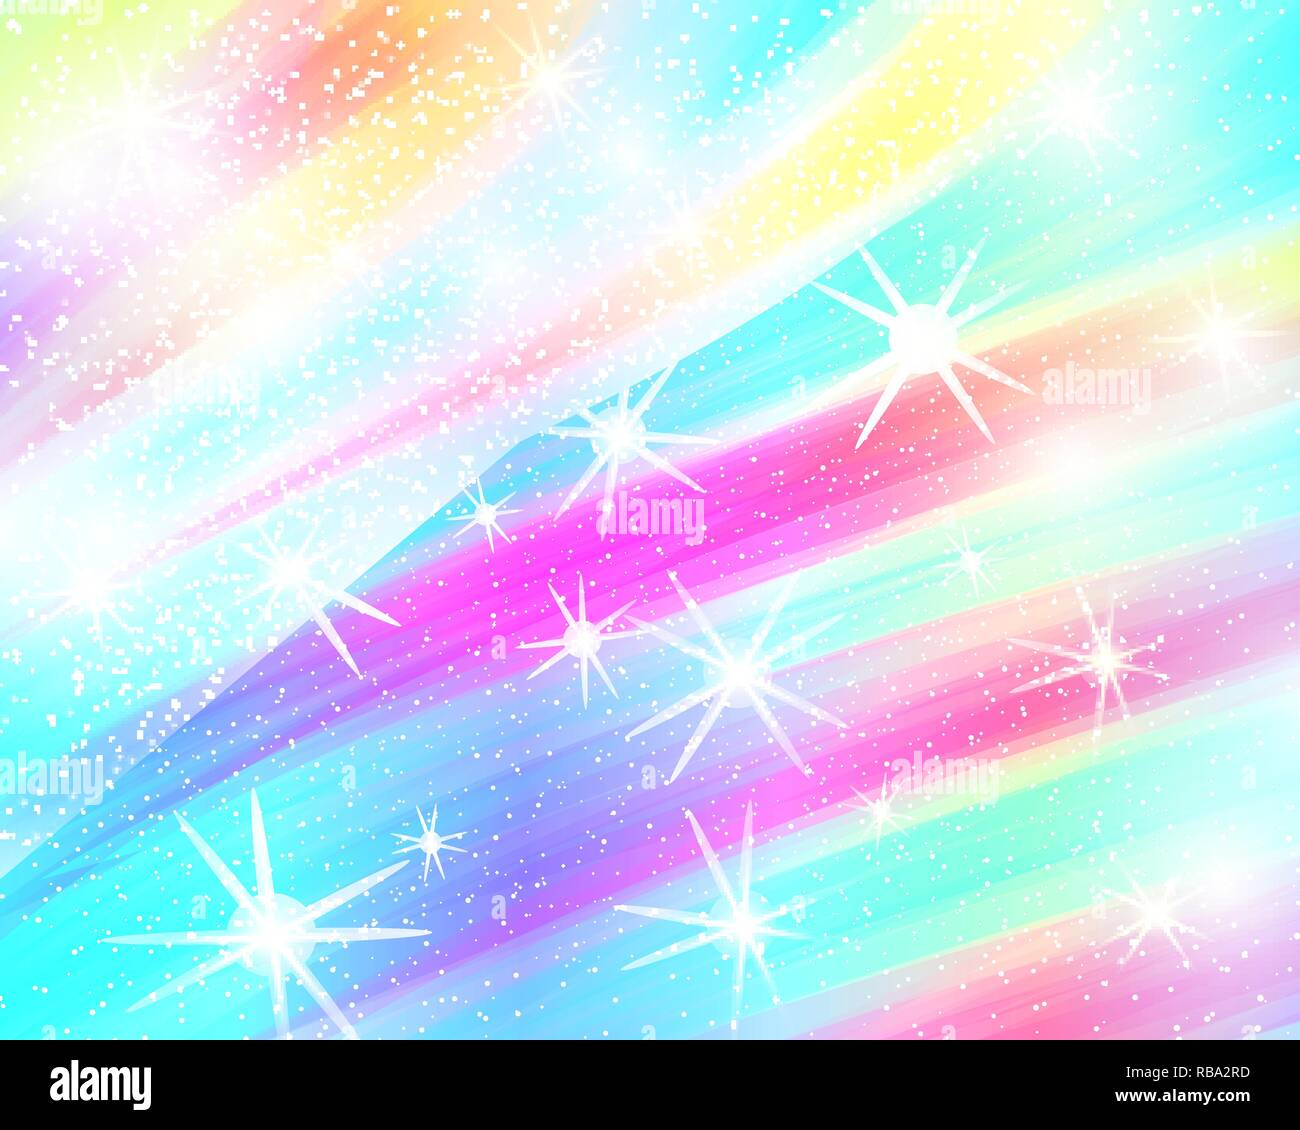 unicorn rainbow background holographic sky in pastel color bright mermaid pattern in princess colors vector illustration fantasy gradient colorful RBA2RD